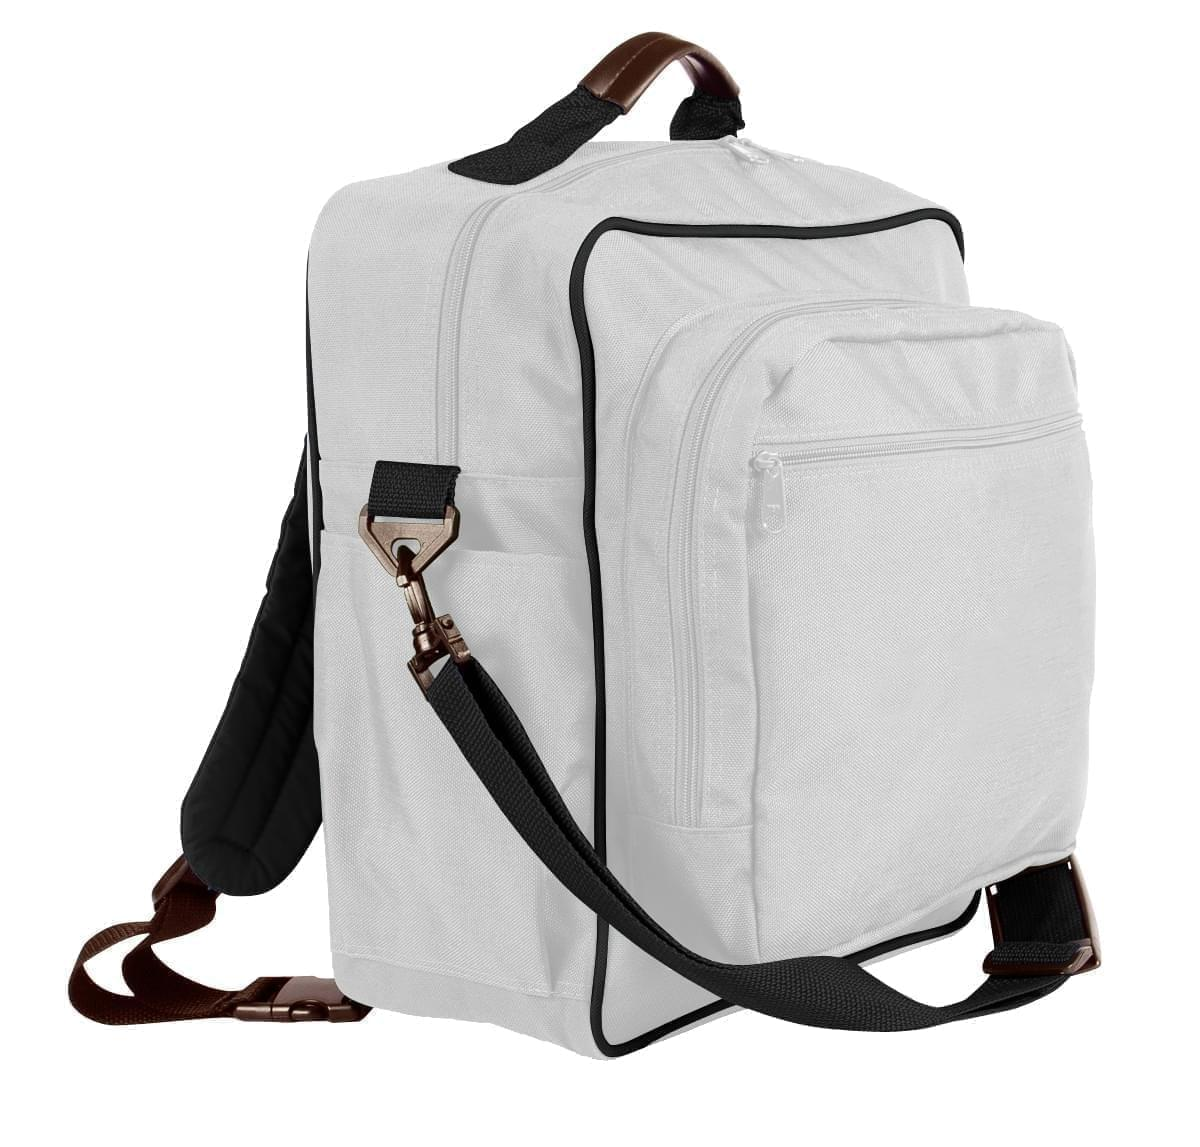 USA Made Poly Daypack Rucksacks, White-Black, 1070-A3R